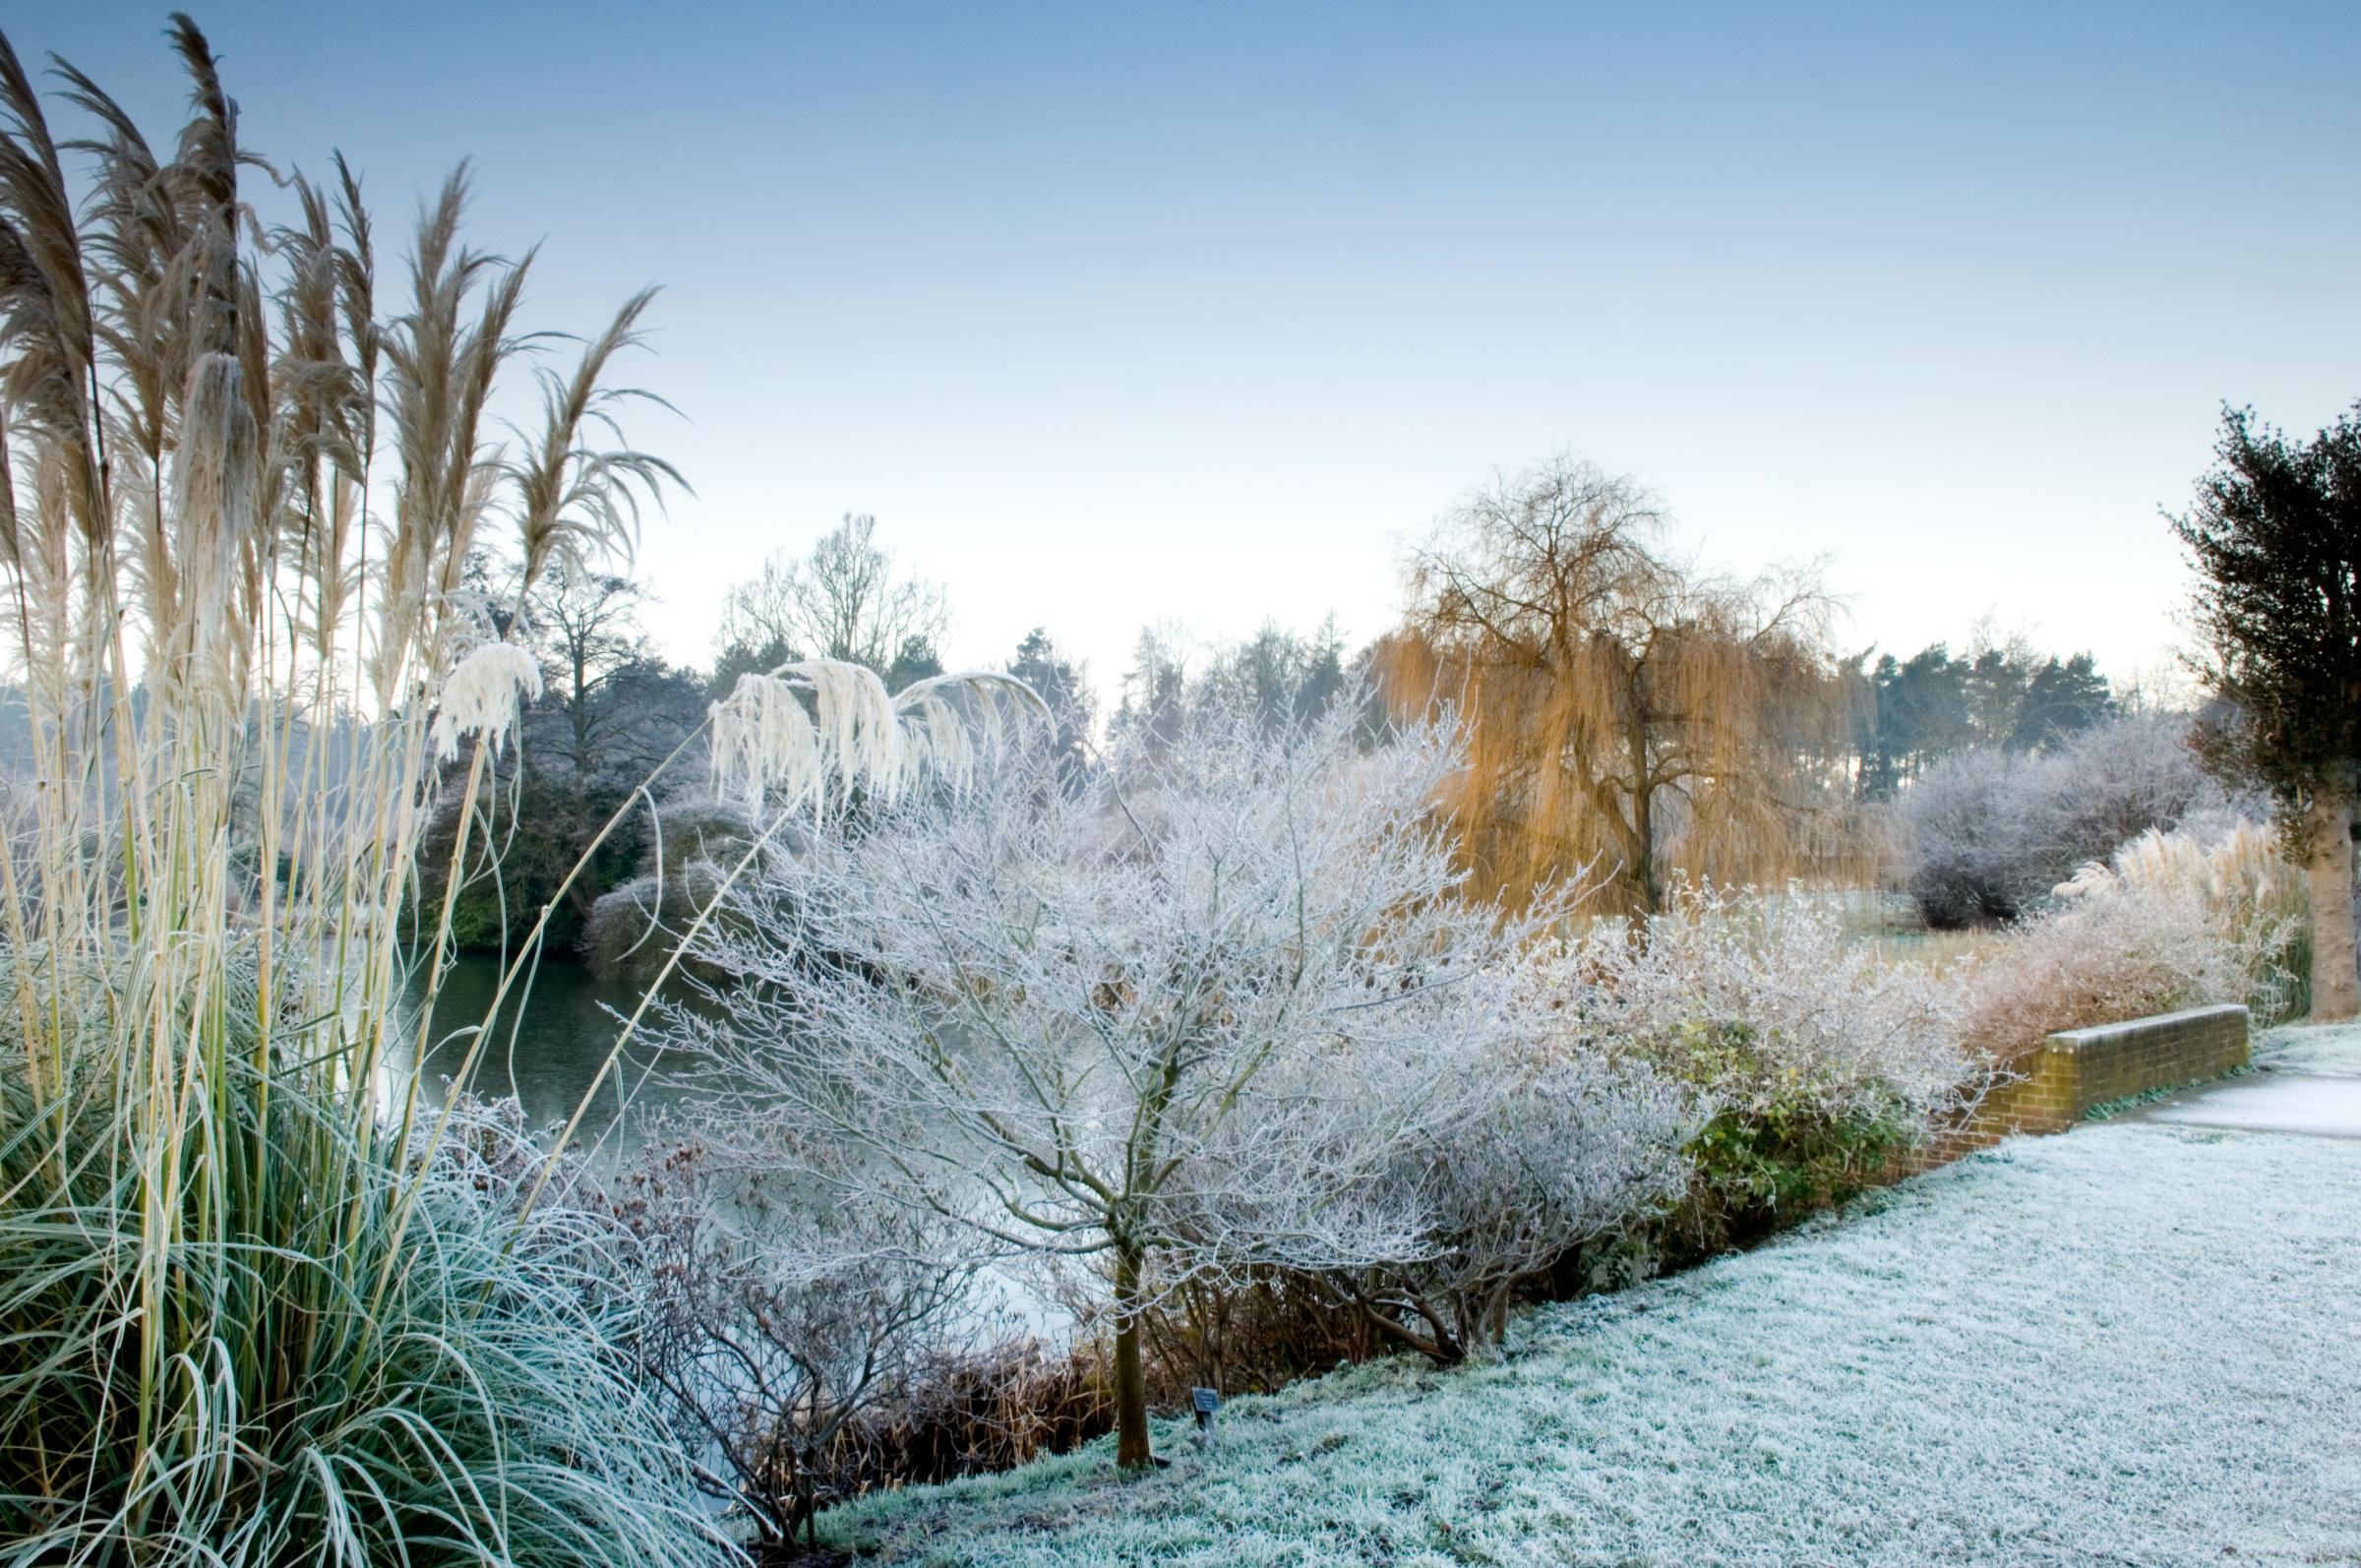 marks226.December . Winter frost . landscape garden . .Owners: The Thomas Phillips Price Trust.Marks Hall Estate, Coggeshall.UK.Jerry Harpur.December, Winter, frost, landscape, garden, Marks Hall Estate, Coggeshall, UK, Jerry Harpur, ....